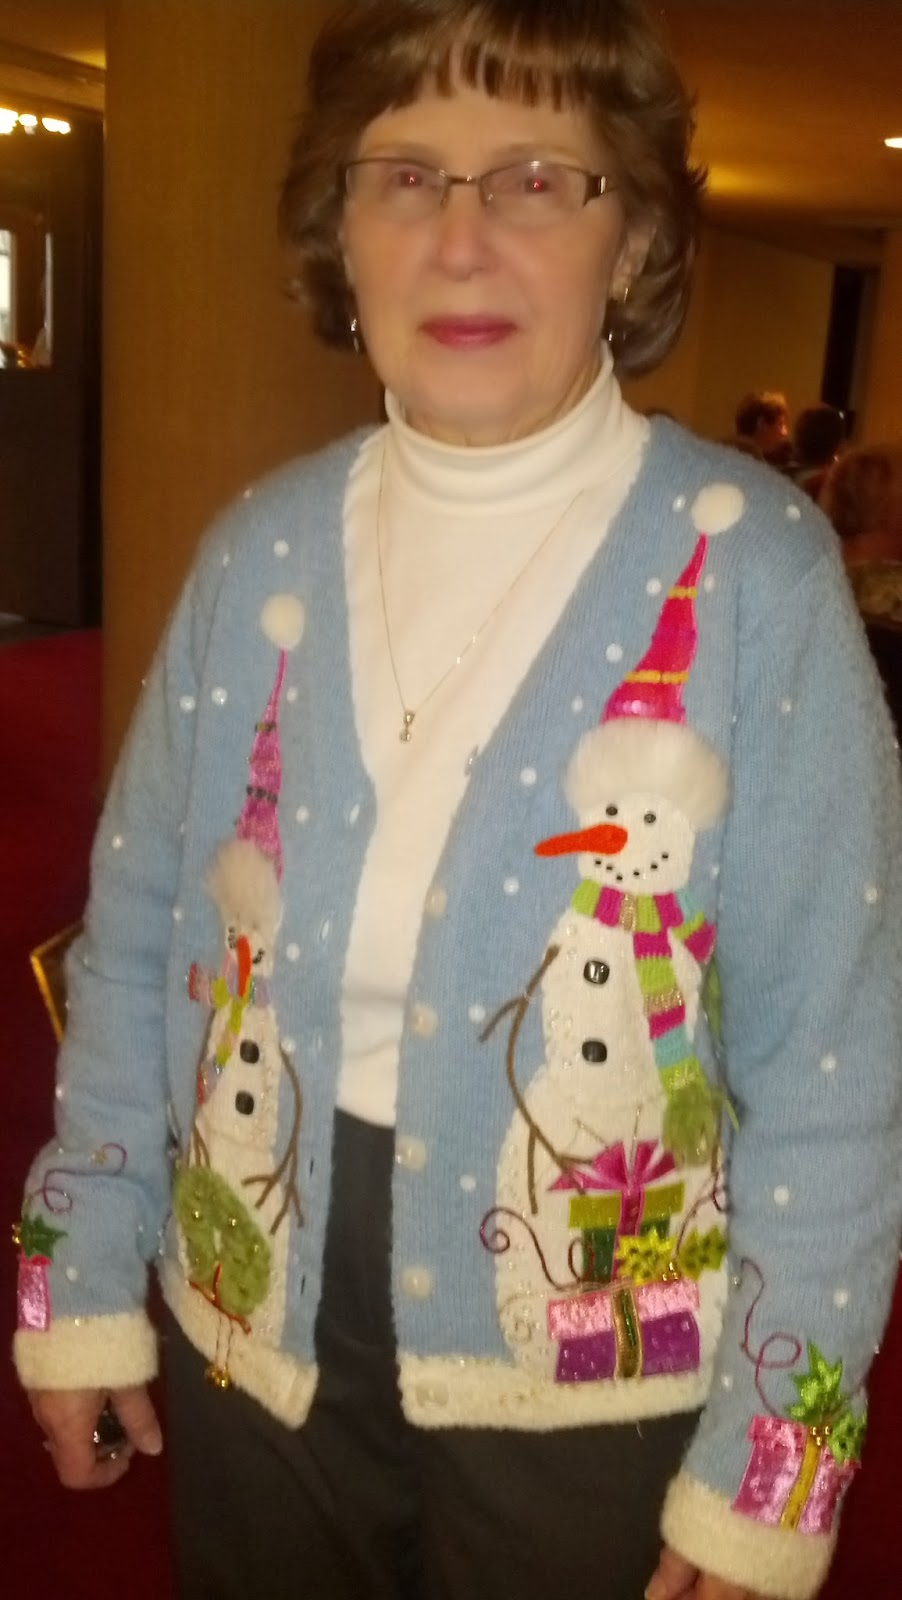 Nikos: Photos from Ugly Christmas Sweater (UCS) Sunday ...